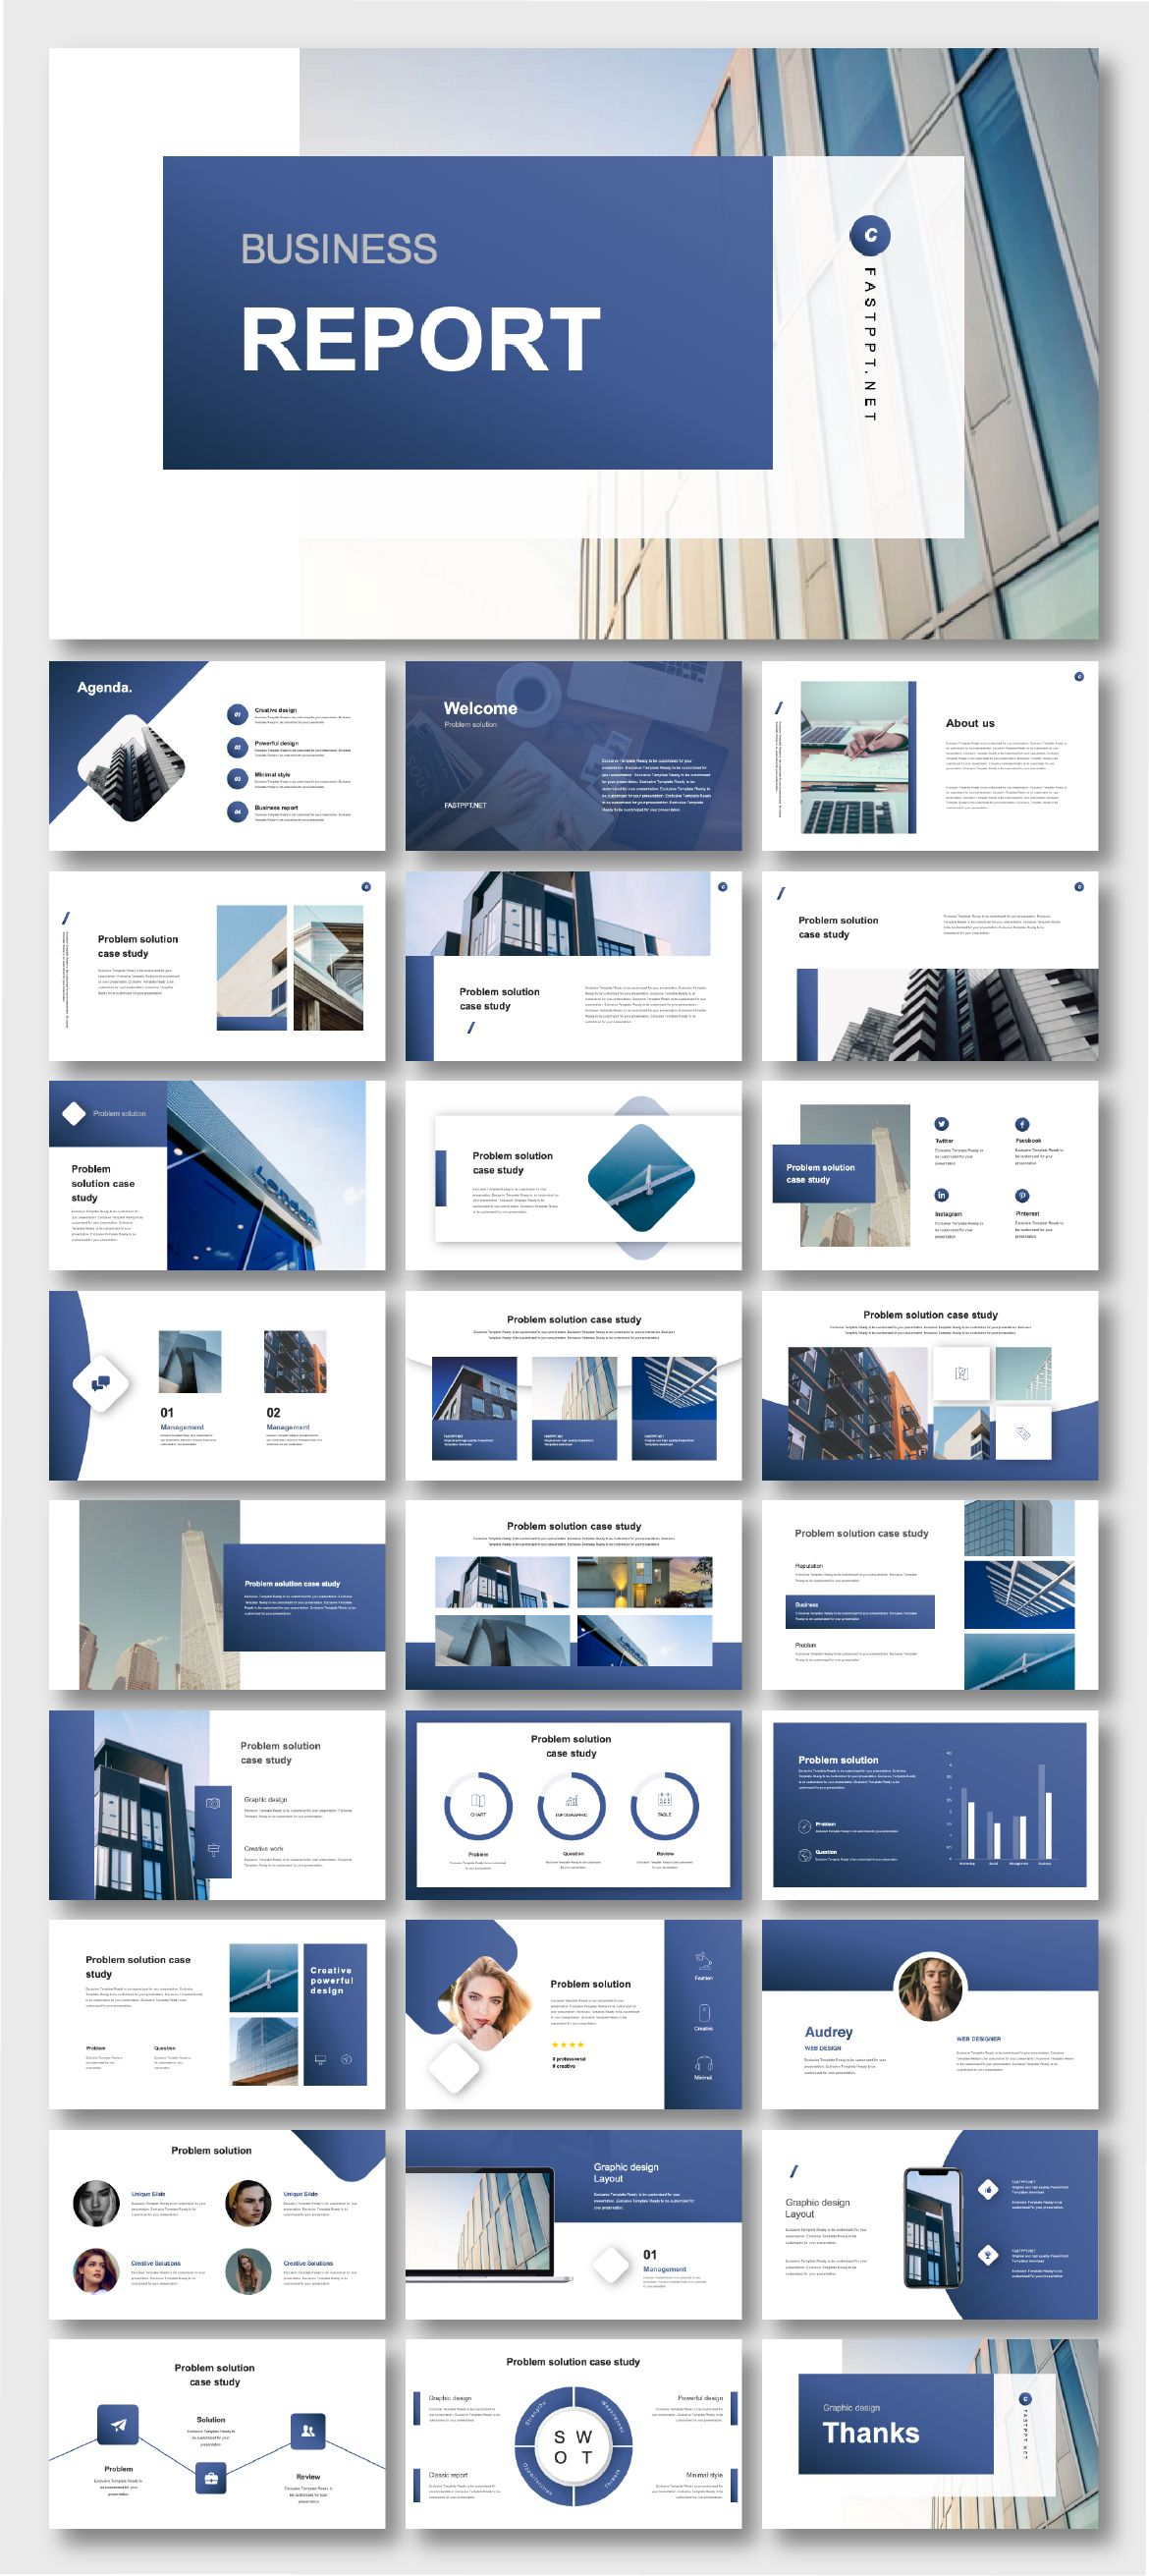 Cool Modern Blue Business Presentation Template Original And High Quality Powerpoint Templates Business Presentation Templates Powerpoint Presentation Design Ppt Template Design